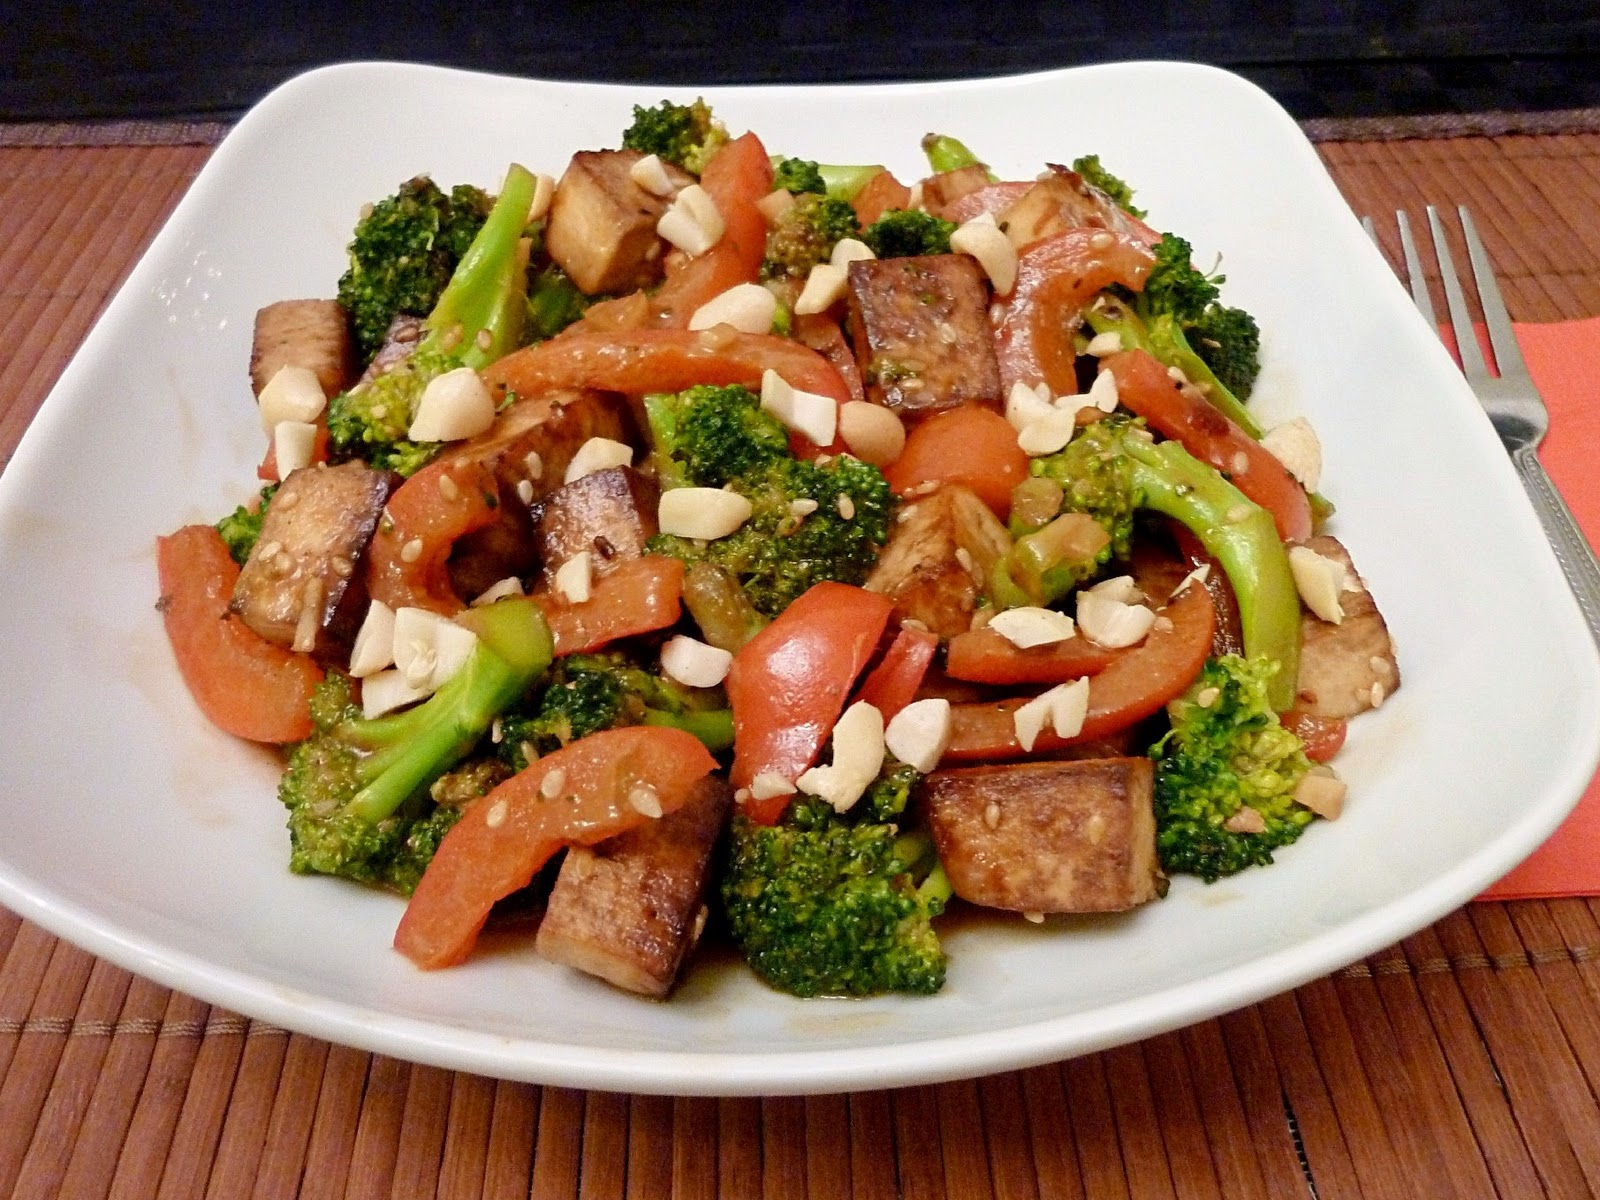 ... tofu stir fry broccoli tofu stir fry with brown rice stir fried